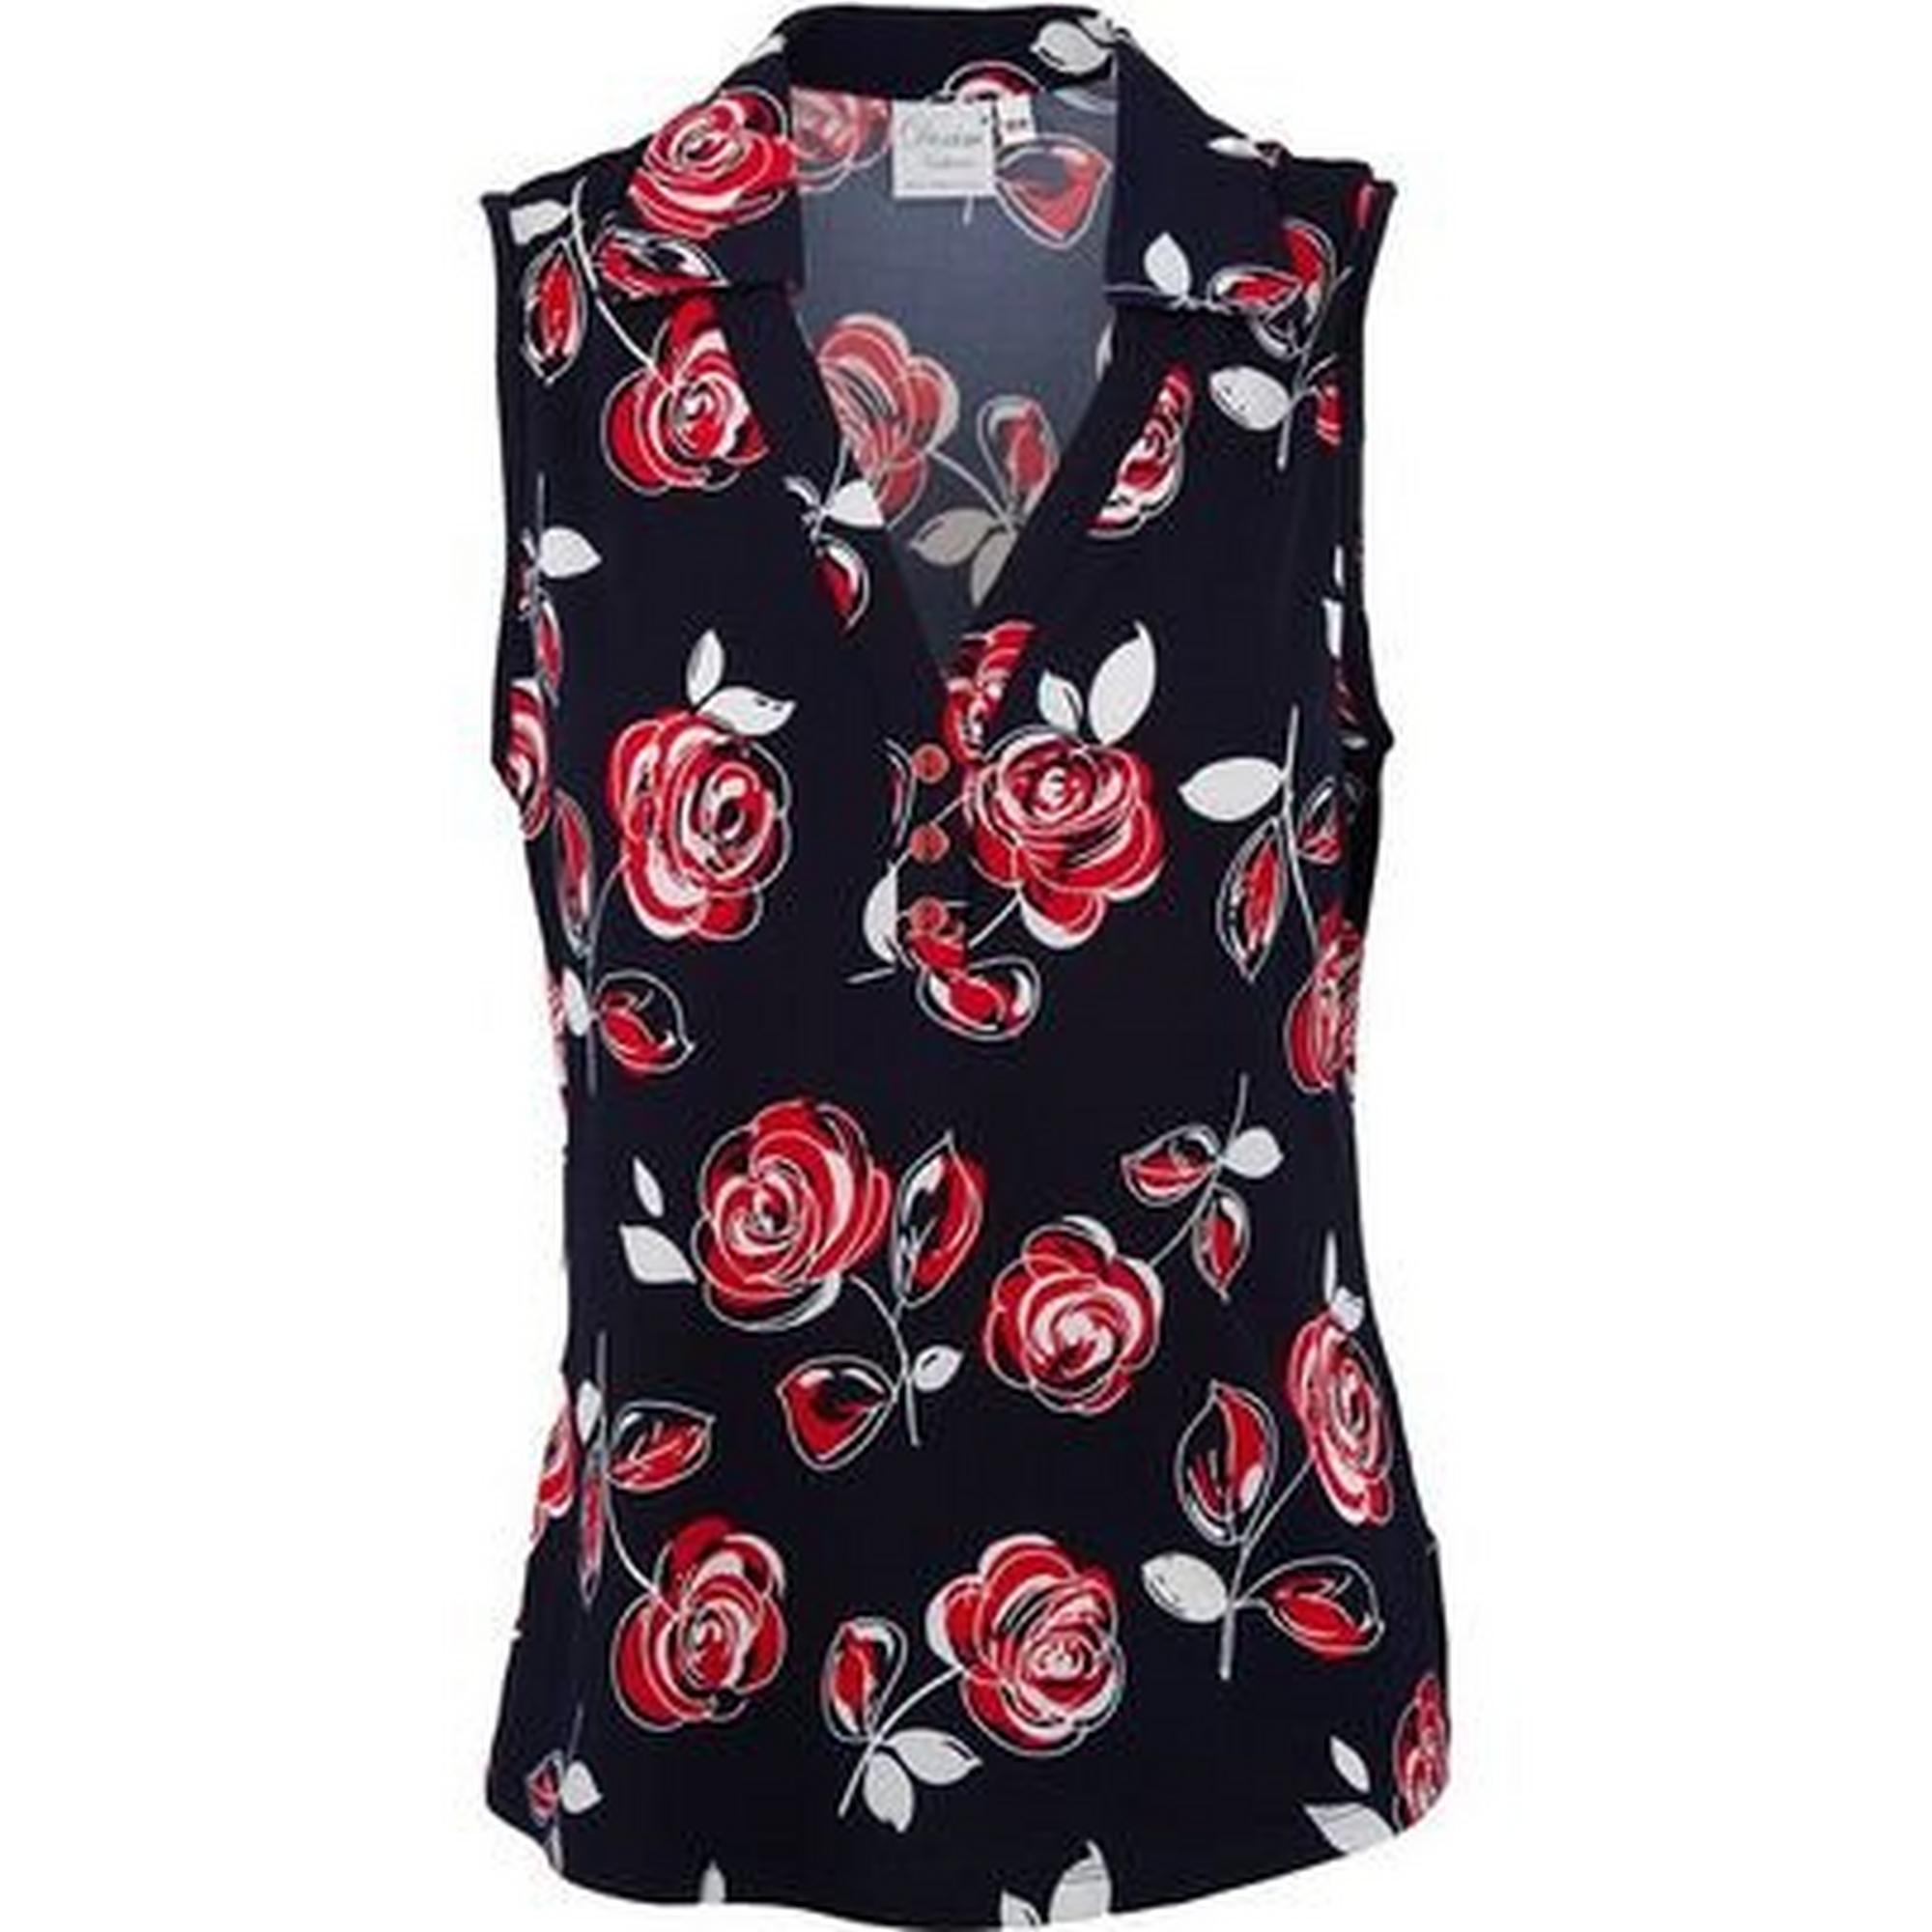 Women's Sleeveless Print Polo